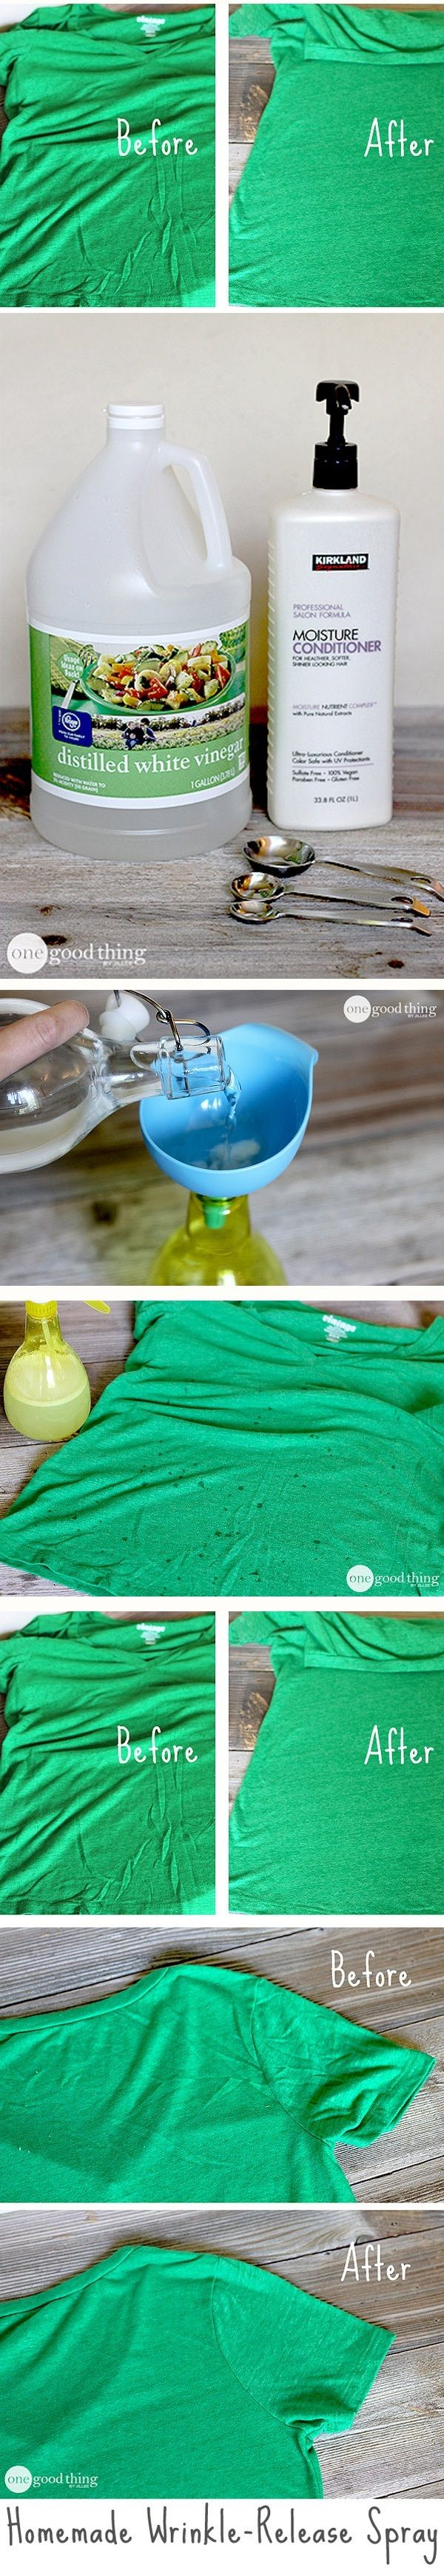 Homemade Wrinkle Release Spray  What you will need: - an empty and clean spray bottle; - 1 tbsp of hair conditioner; - 1 tbsp of white vinegar; - 2 cups of distilled water.